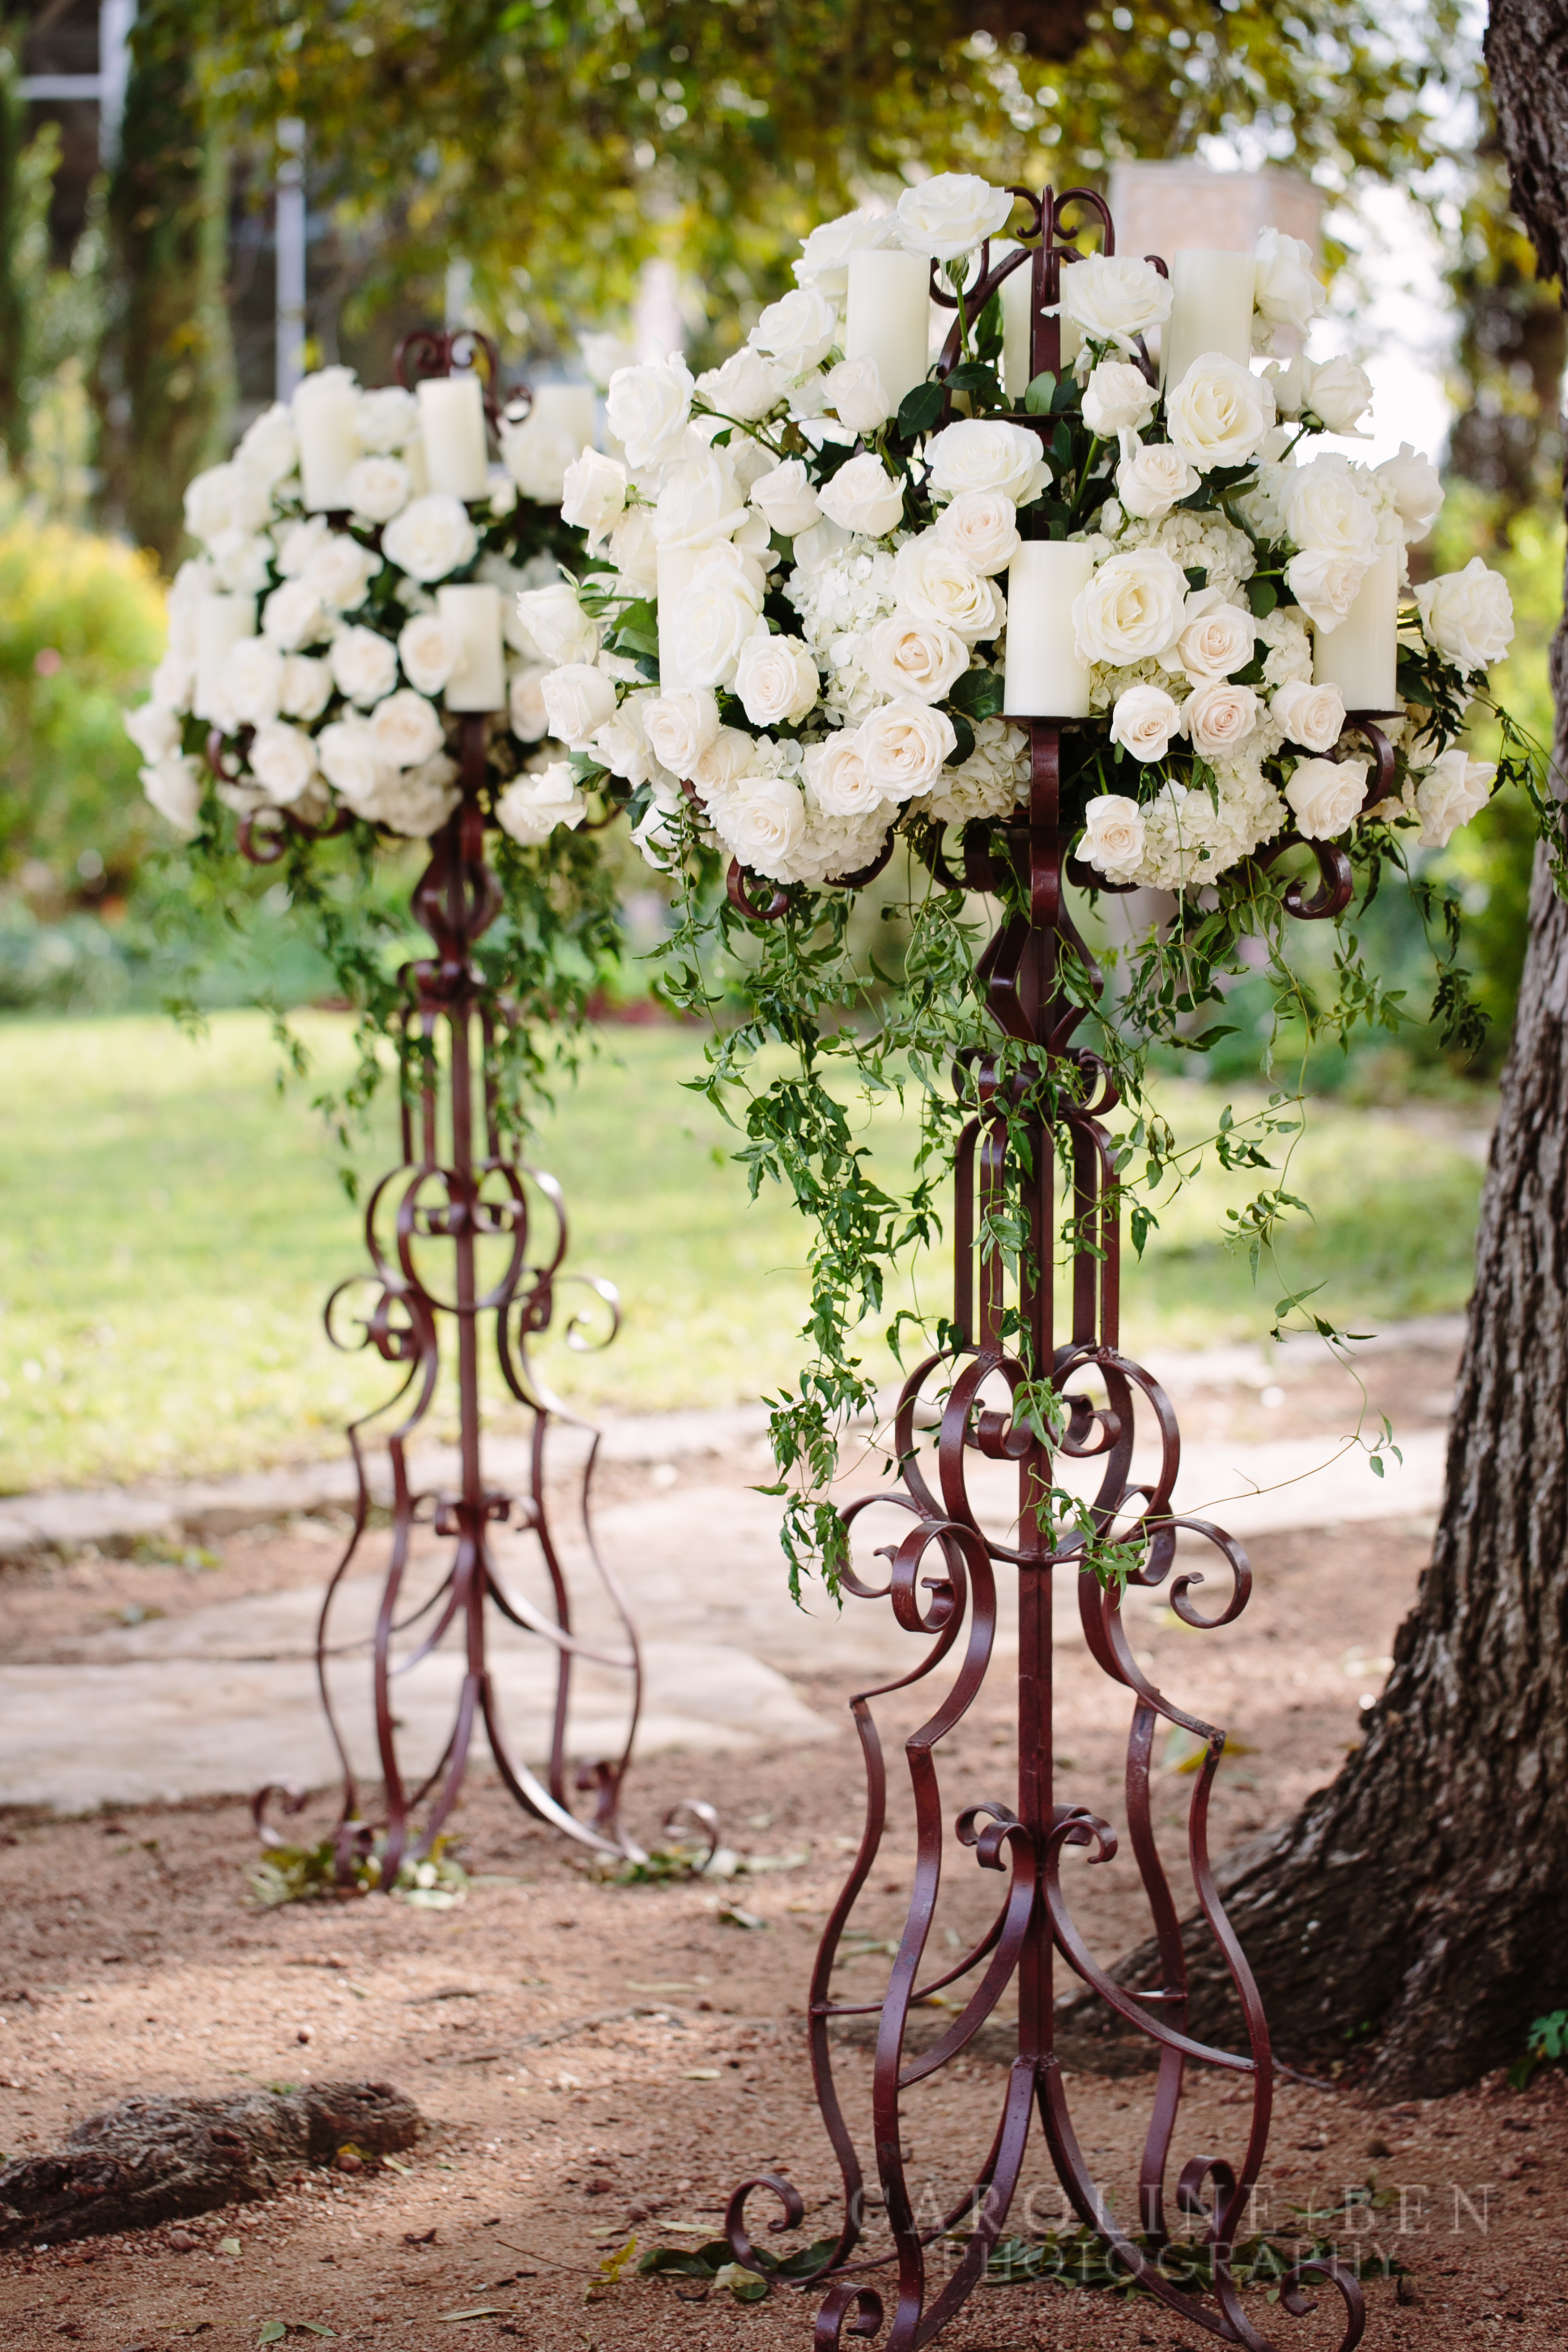 Grand florals for the ceremony.